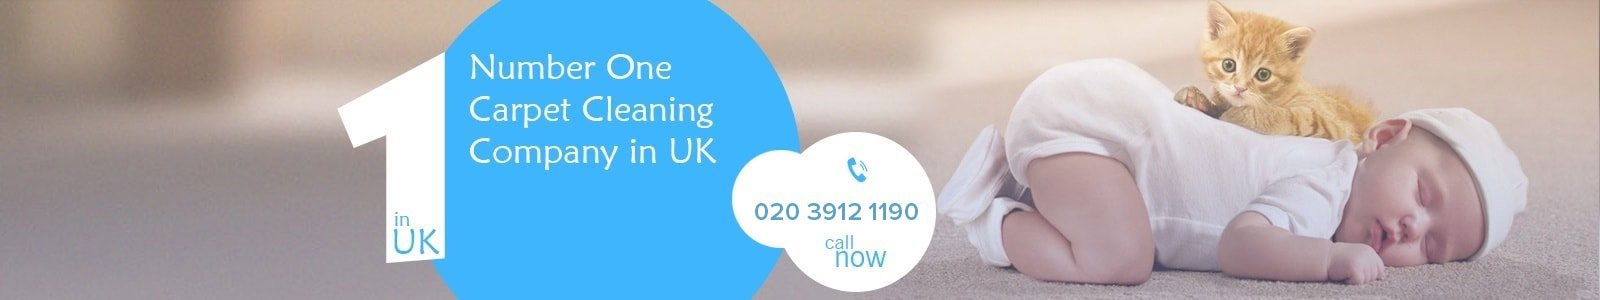 fcc-number-one-carpet-cleaning-in-uk